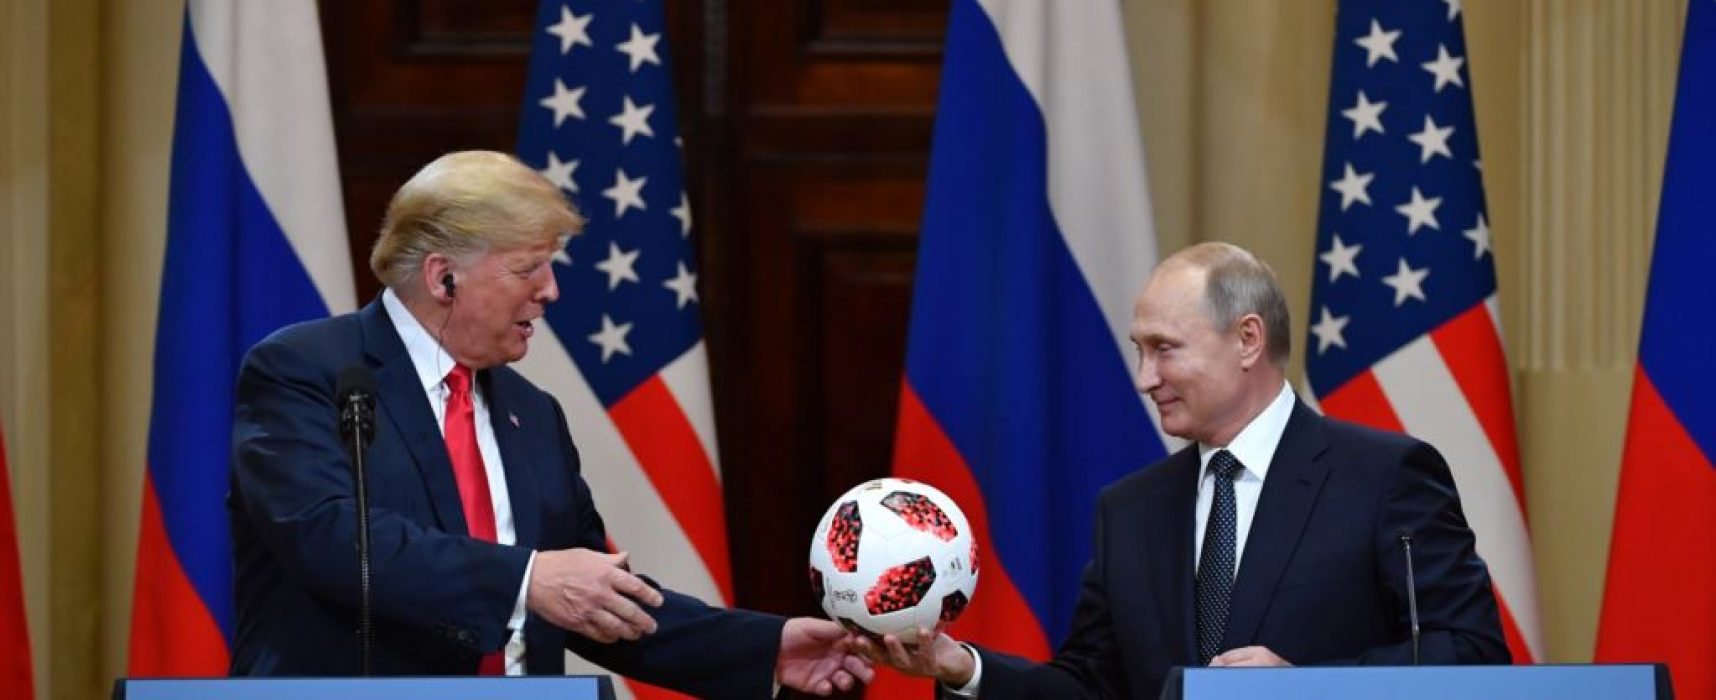 At the Helsinki Summit, Putin Claims Military Coordination Avoids Danger — the Record Proves Otherwise